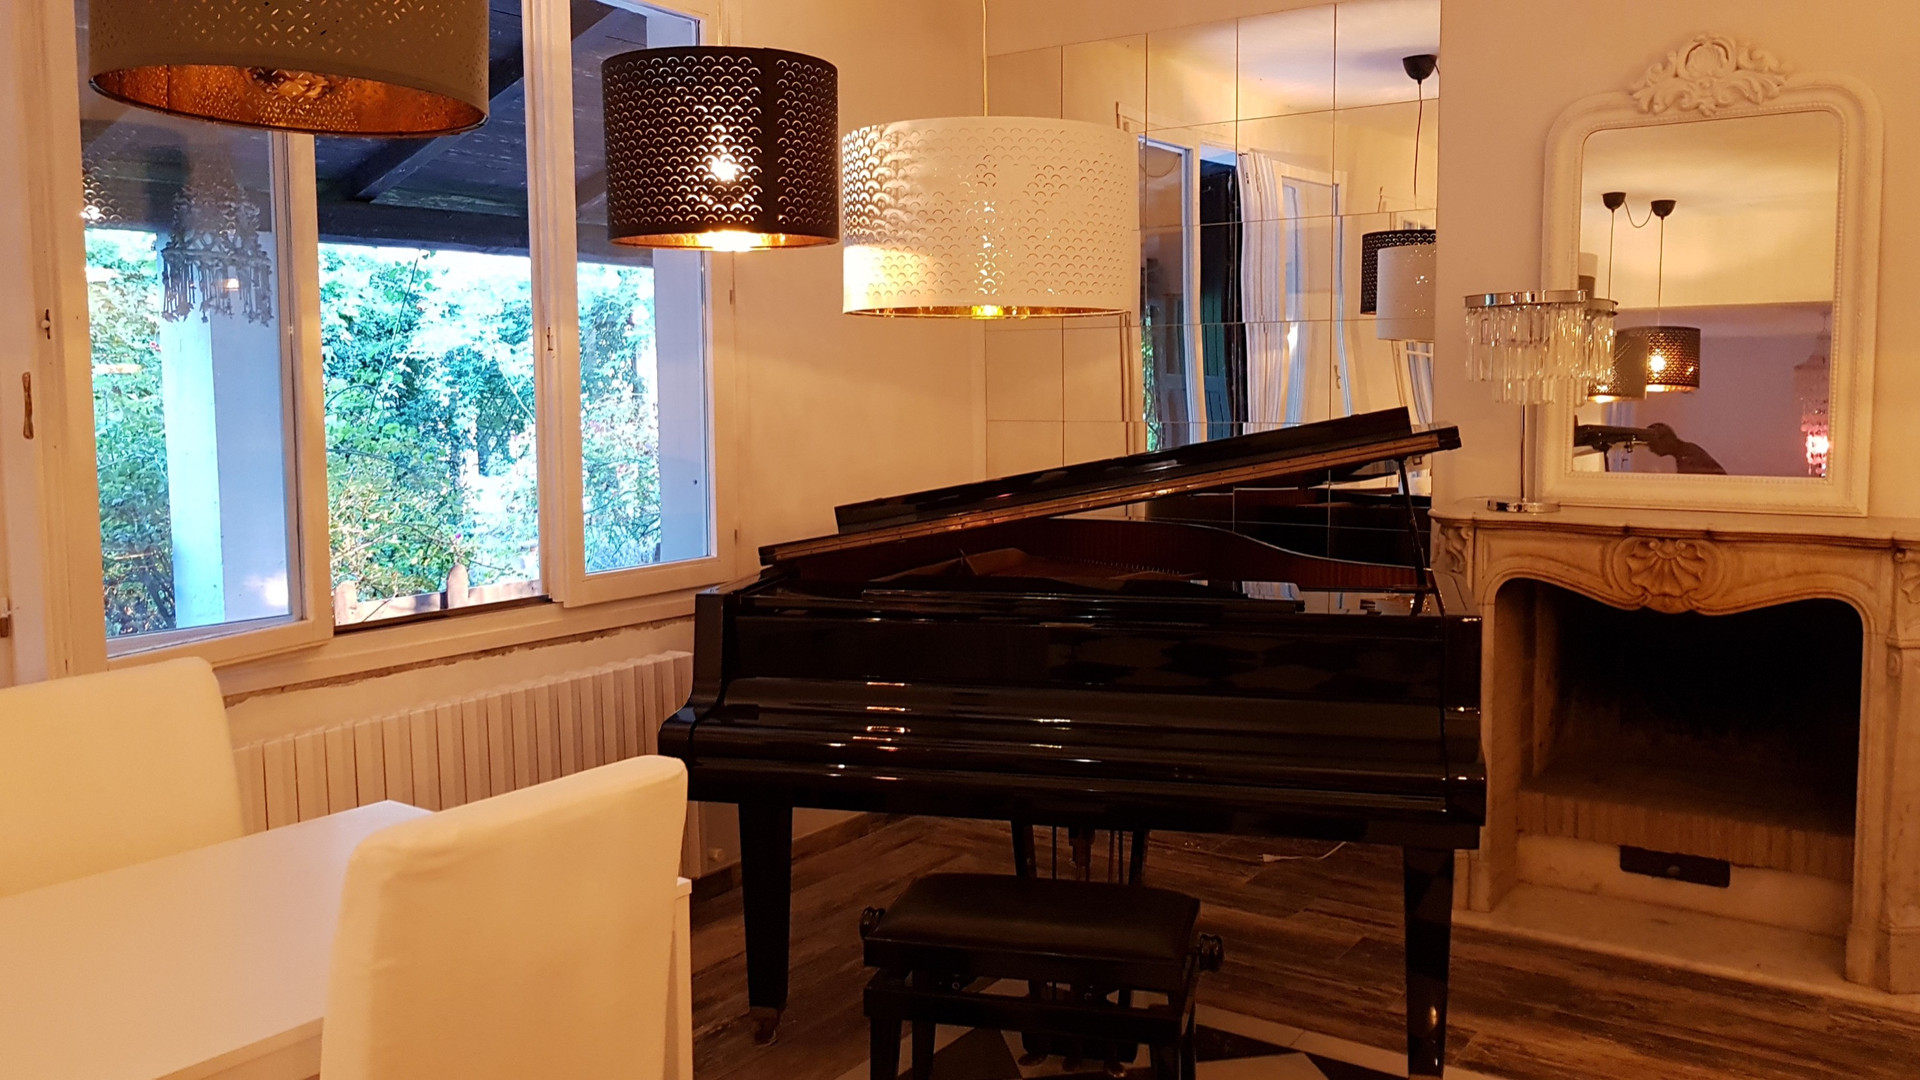 Our Grand Piano for Jazz and Classical Music